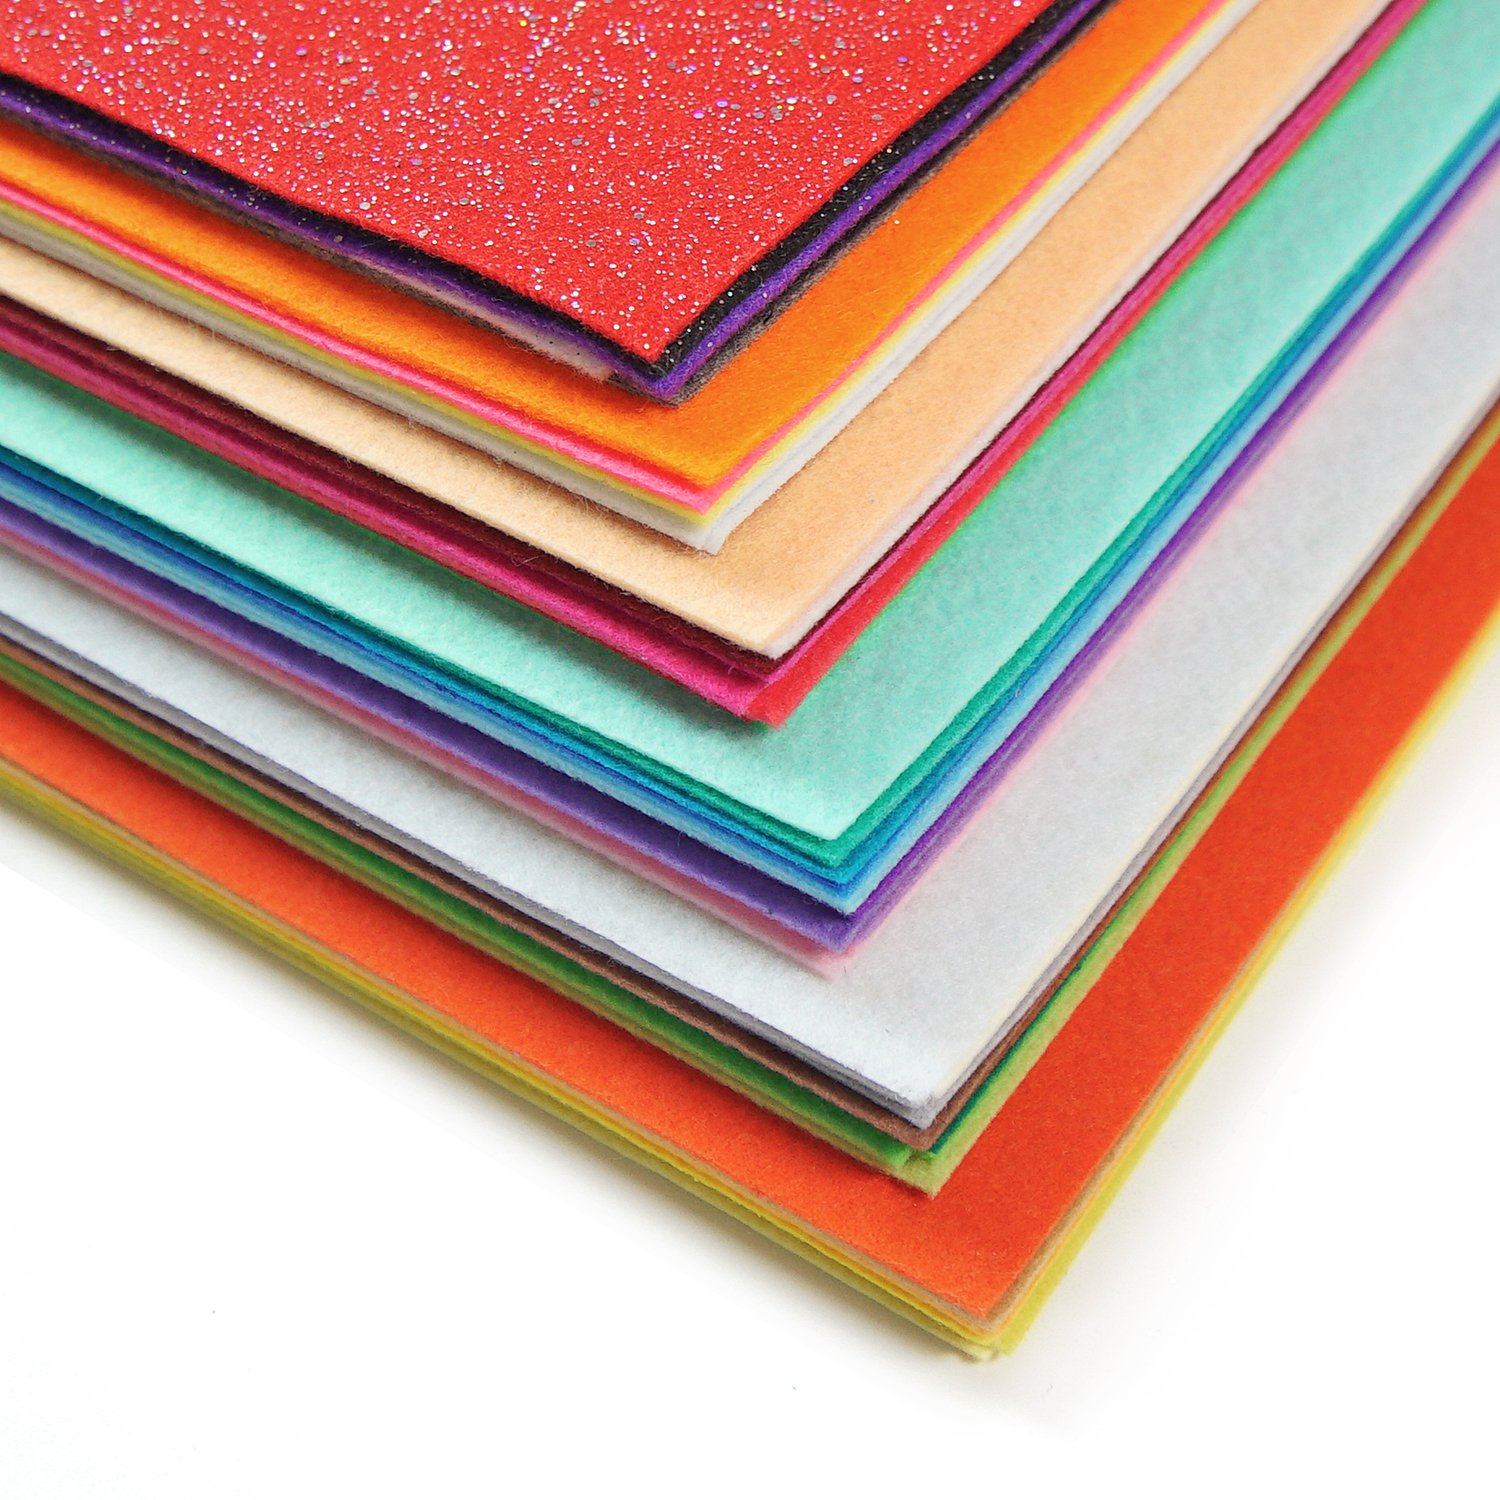 ARTEZA 50 Assorted Stiff Felt Fabric Sheets, 8.3''x11.8'' Squares, 1.5mm Thick for DIY Crafts, Sewing, Crafting Projects by ARTEZA (Image #2)